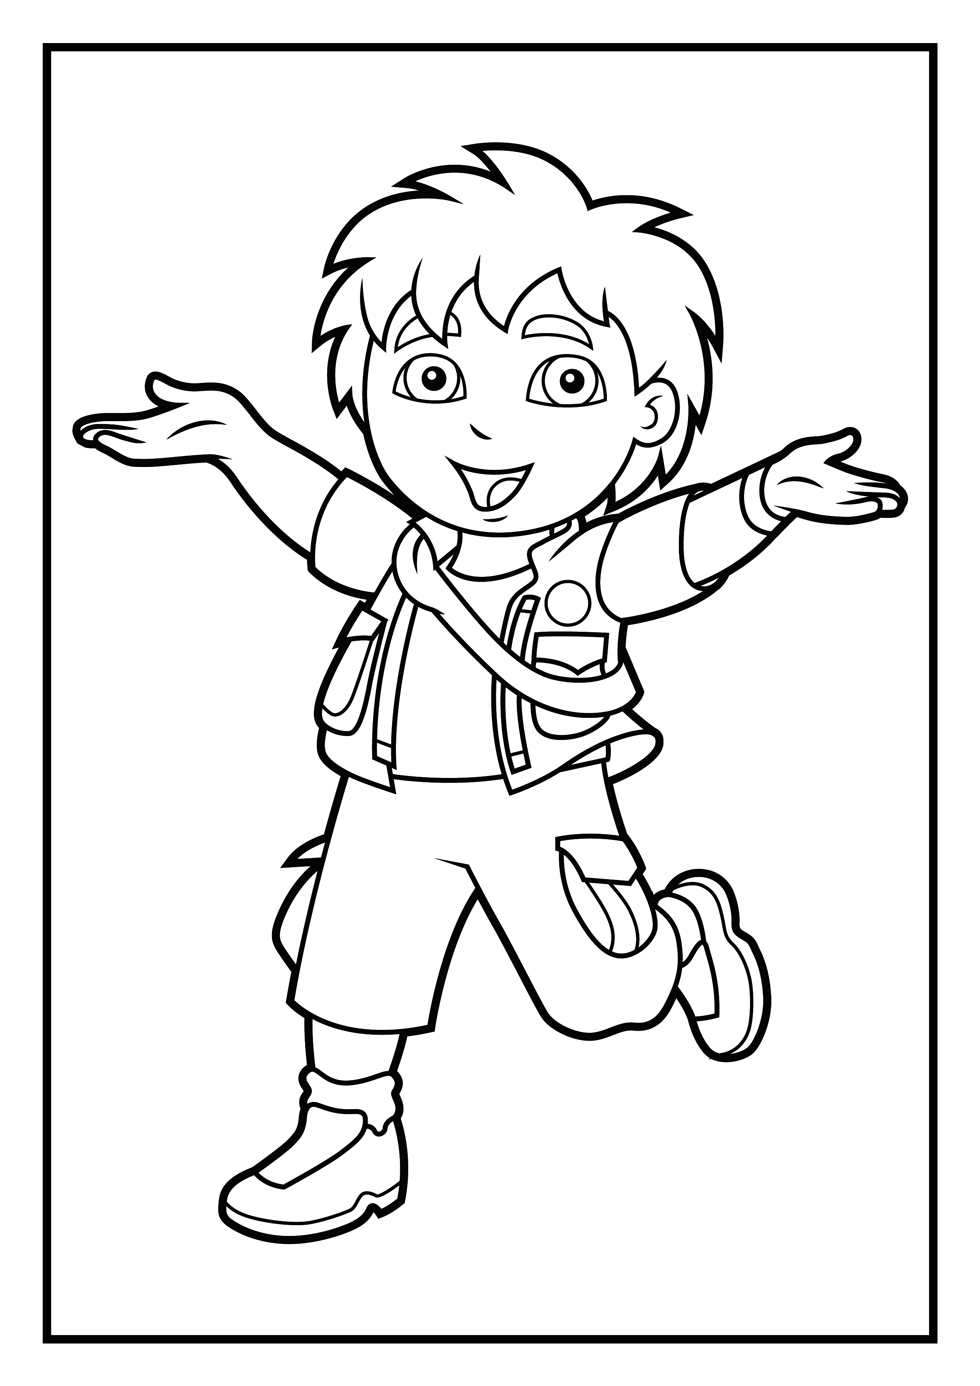 diego coloring pages go diego coloring pages for kids printable free barnkalas diego coloring pages